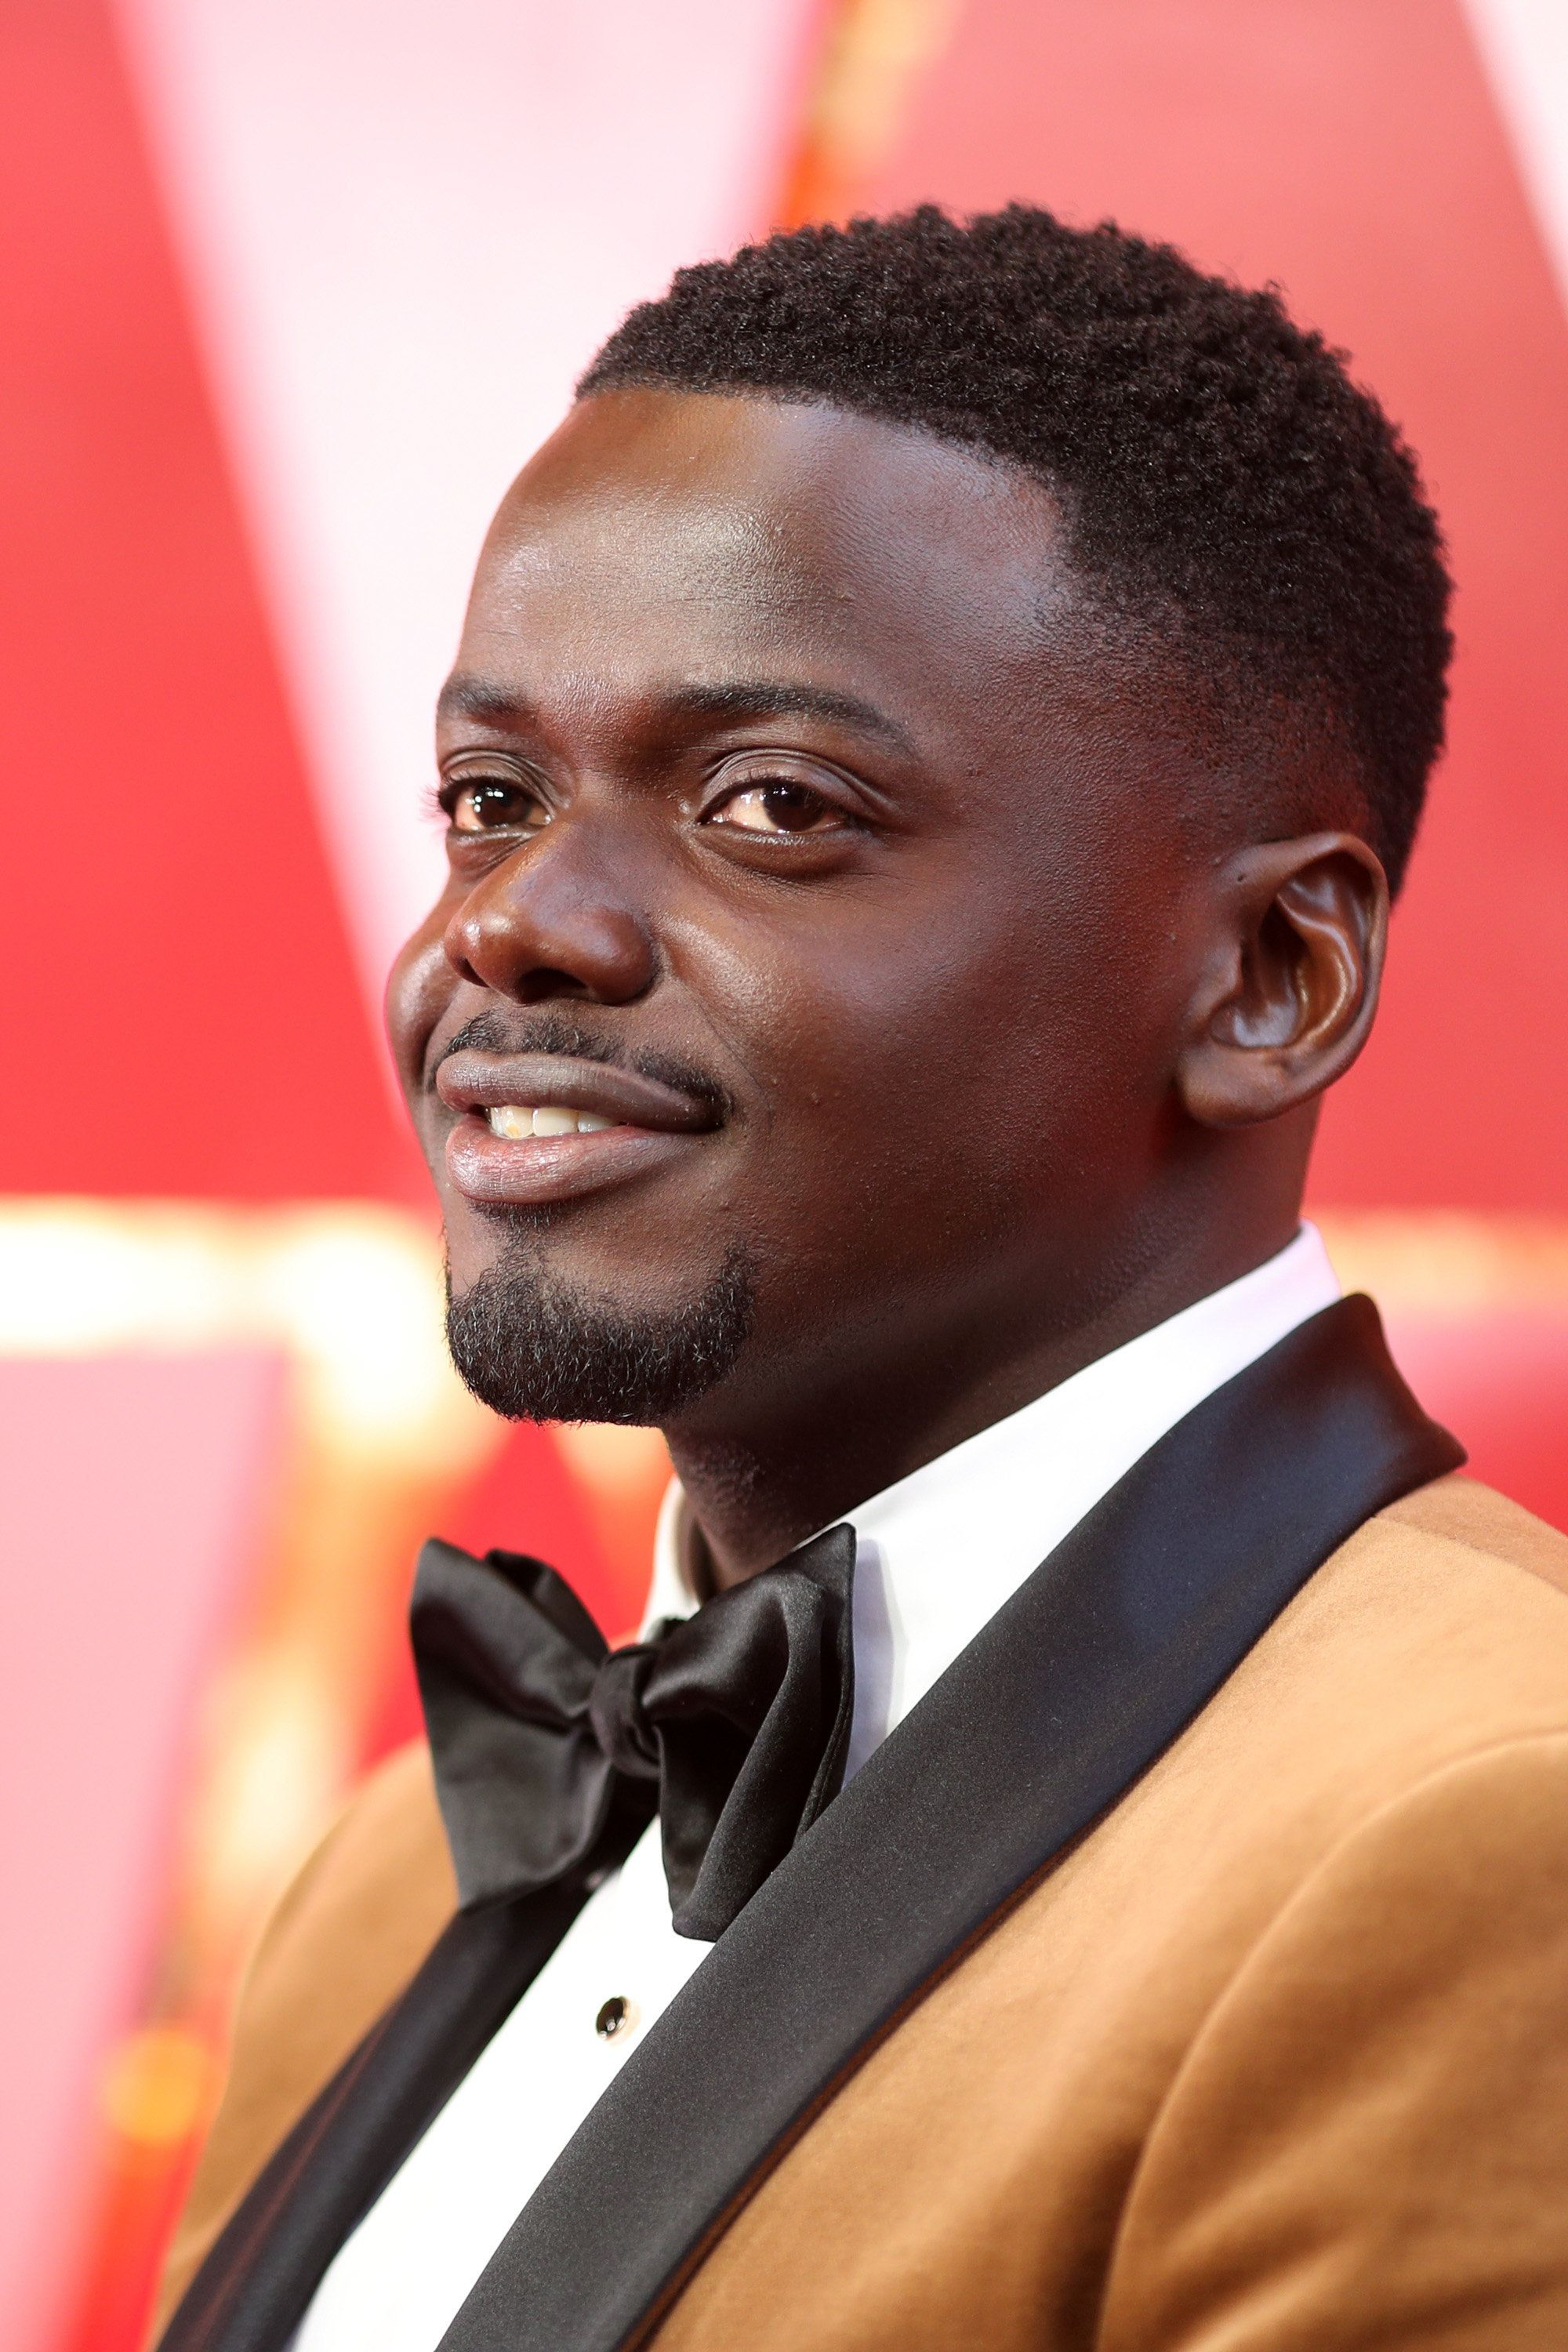 'Black Panther' Star Daniel Kaluuya Wore Fenty Beauty Foundation To The